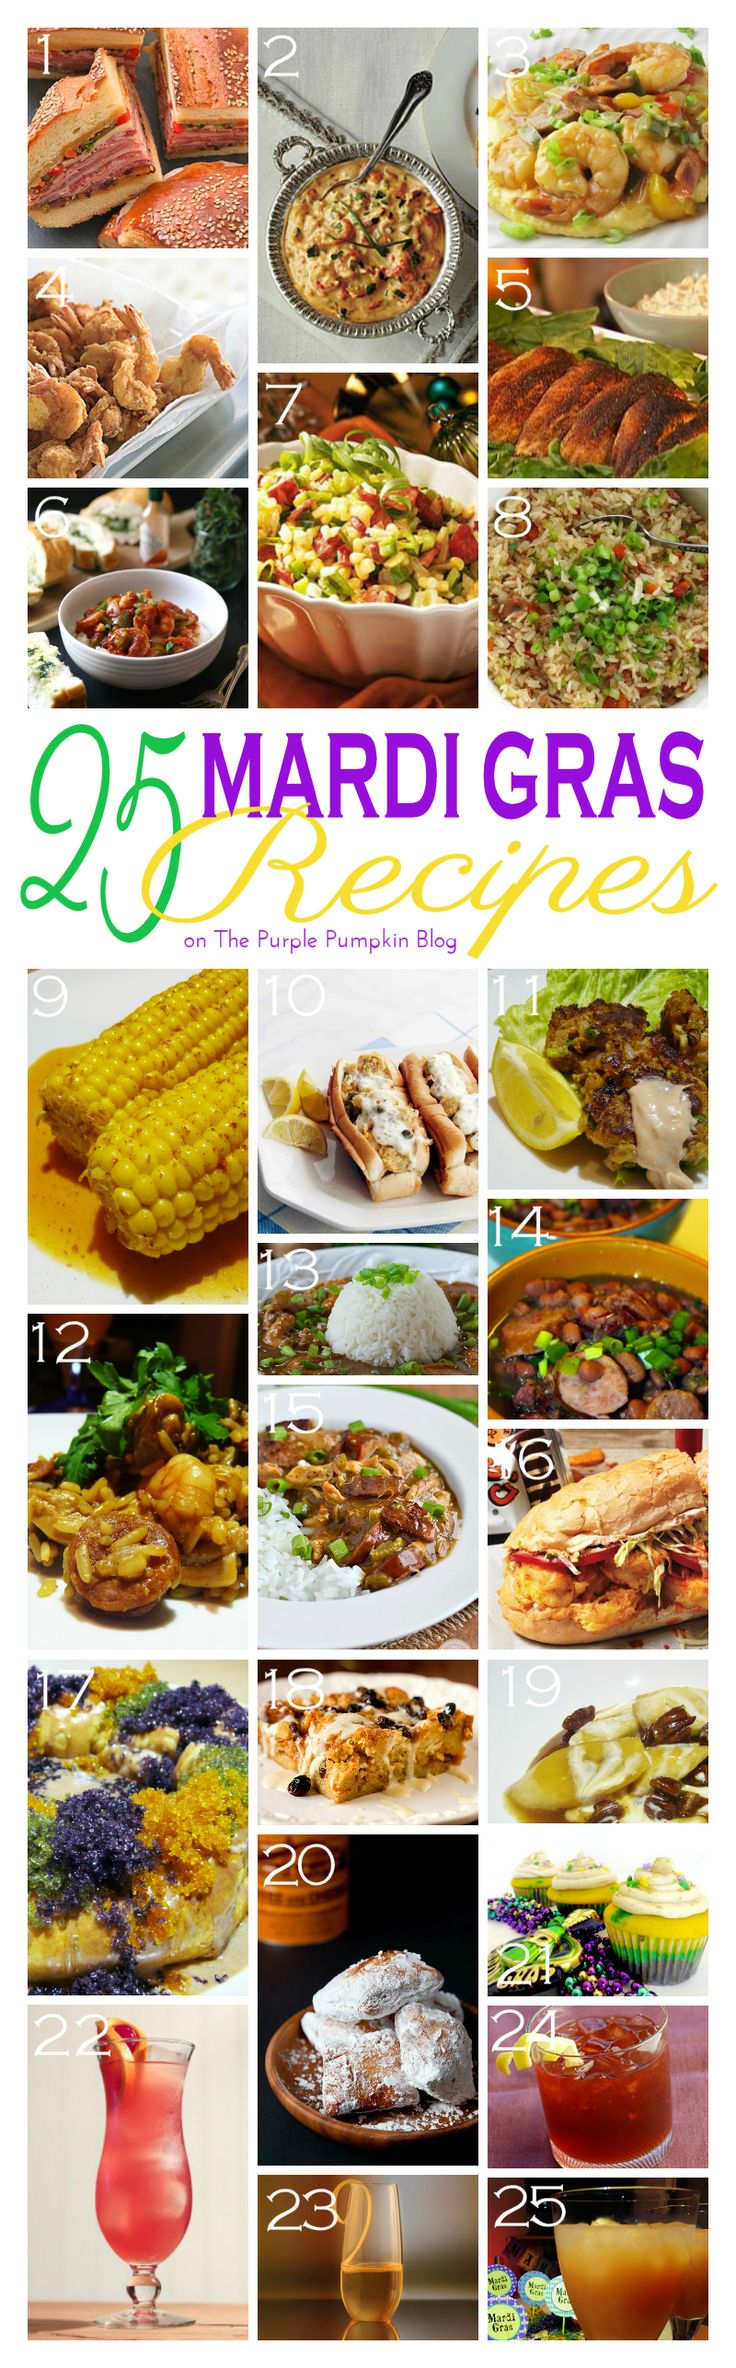 25 mardi gras recipes | mardi gras party ideas | pinterest | mardi